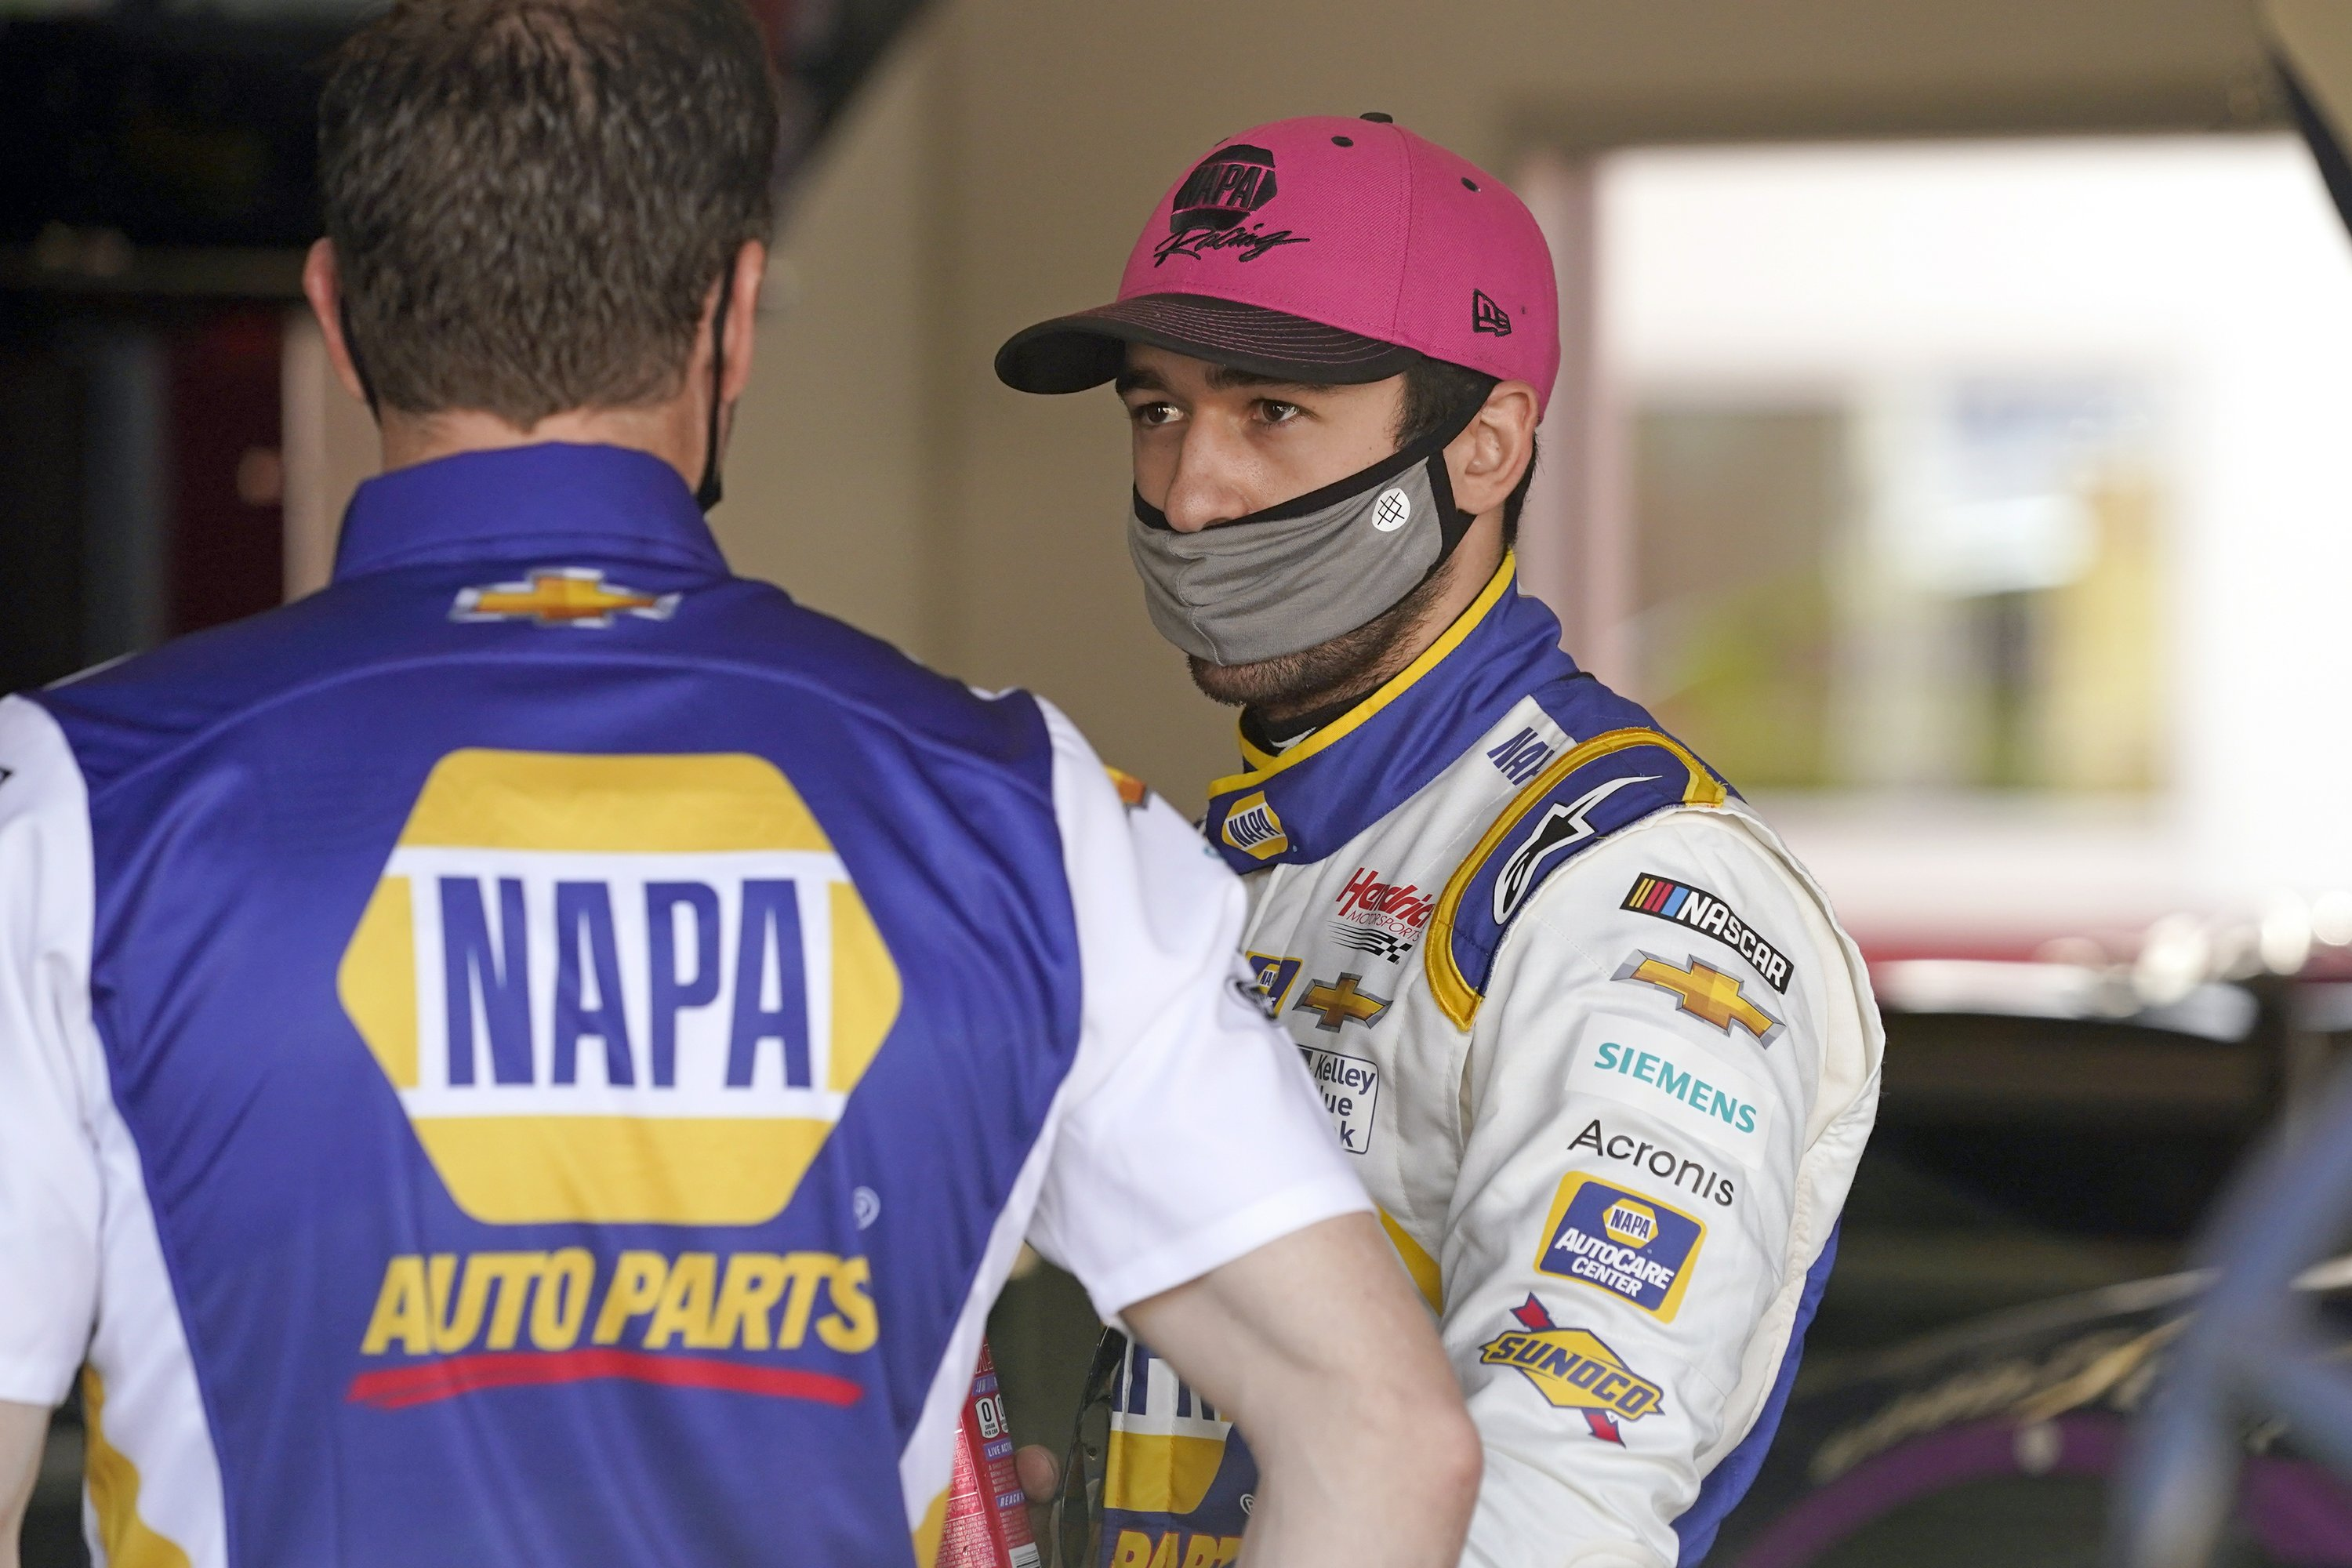 Chasing a repeat: Elliott out for 2nd straight NASCAR title